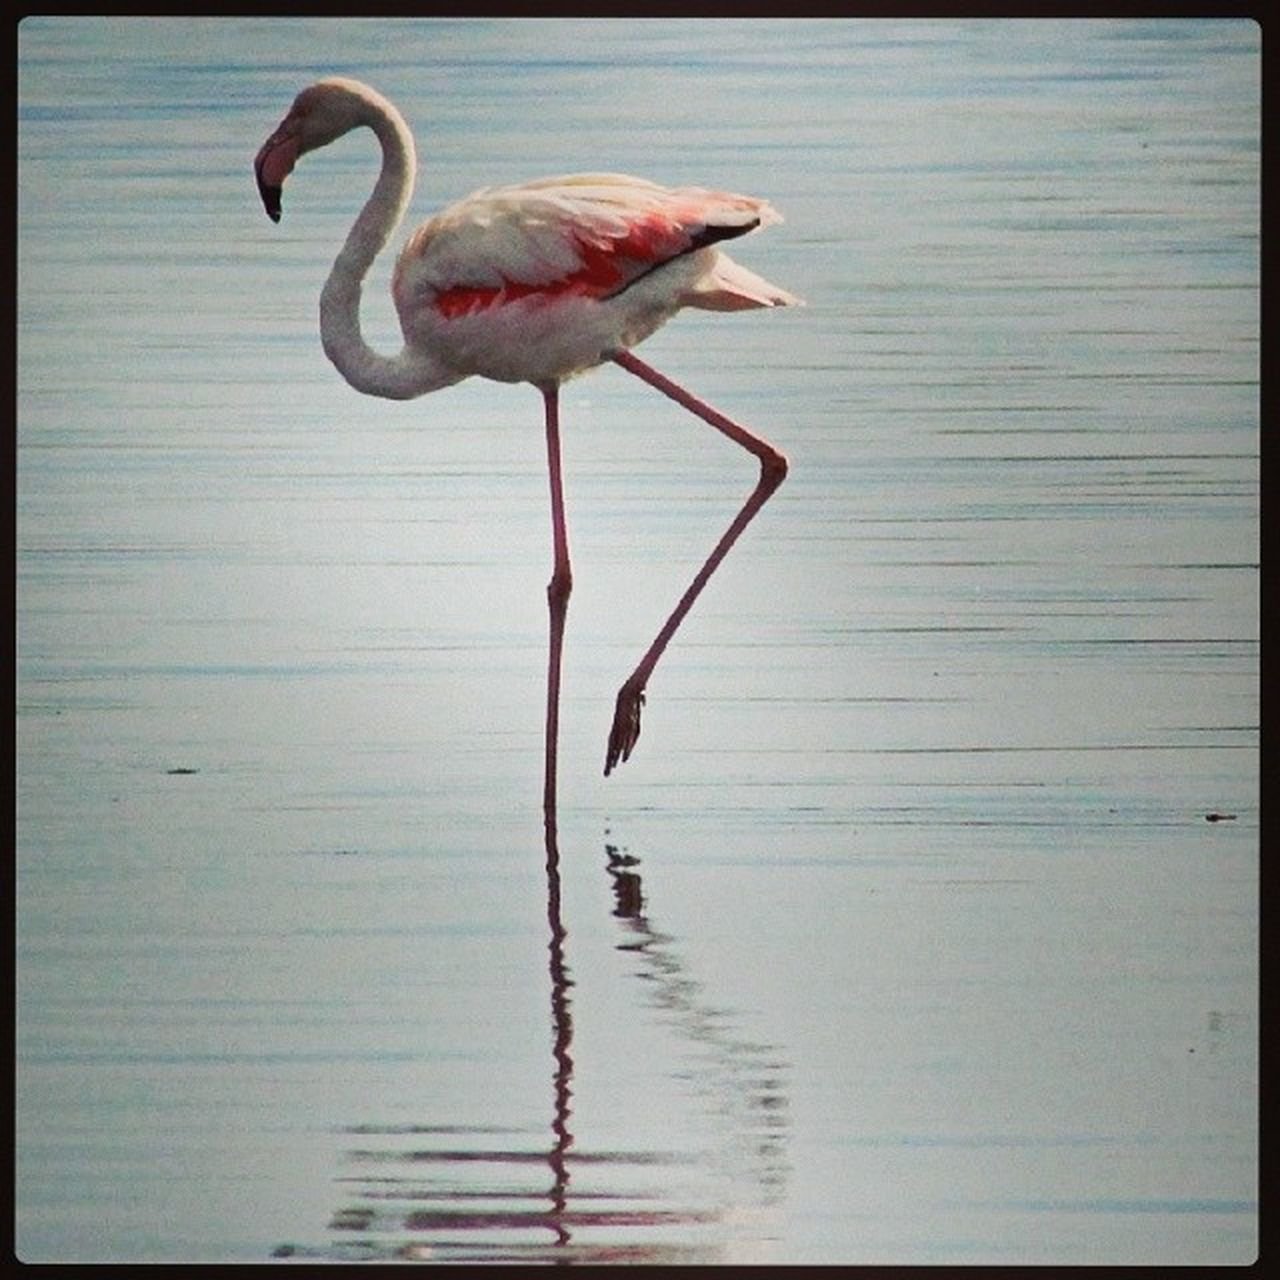 bird, flamingo, water, one animal, animals in the wild, wading, reflection, animal themes, no people, lake, nature, animal wildlife, day, pink color, beak, standing, outdoors, tranquility, beauty in nature, full length, ankle deep in water, close-up